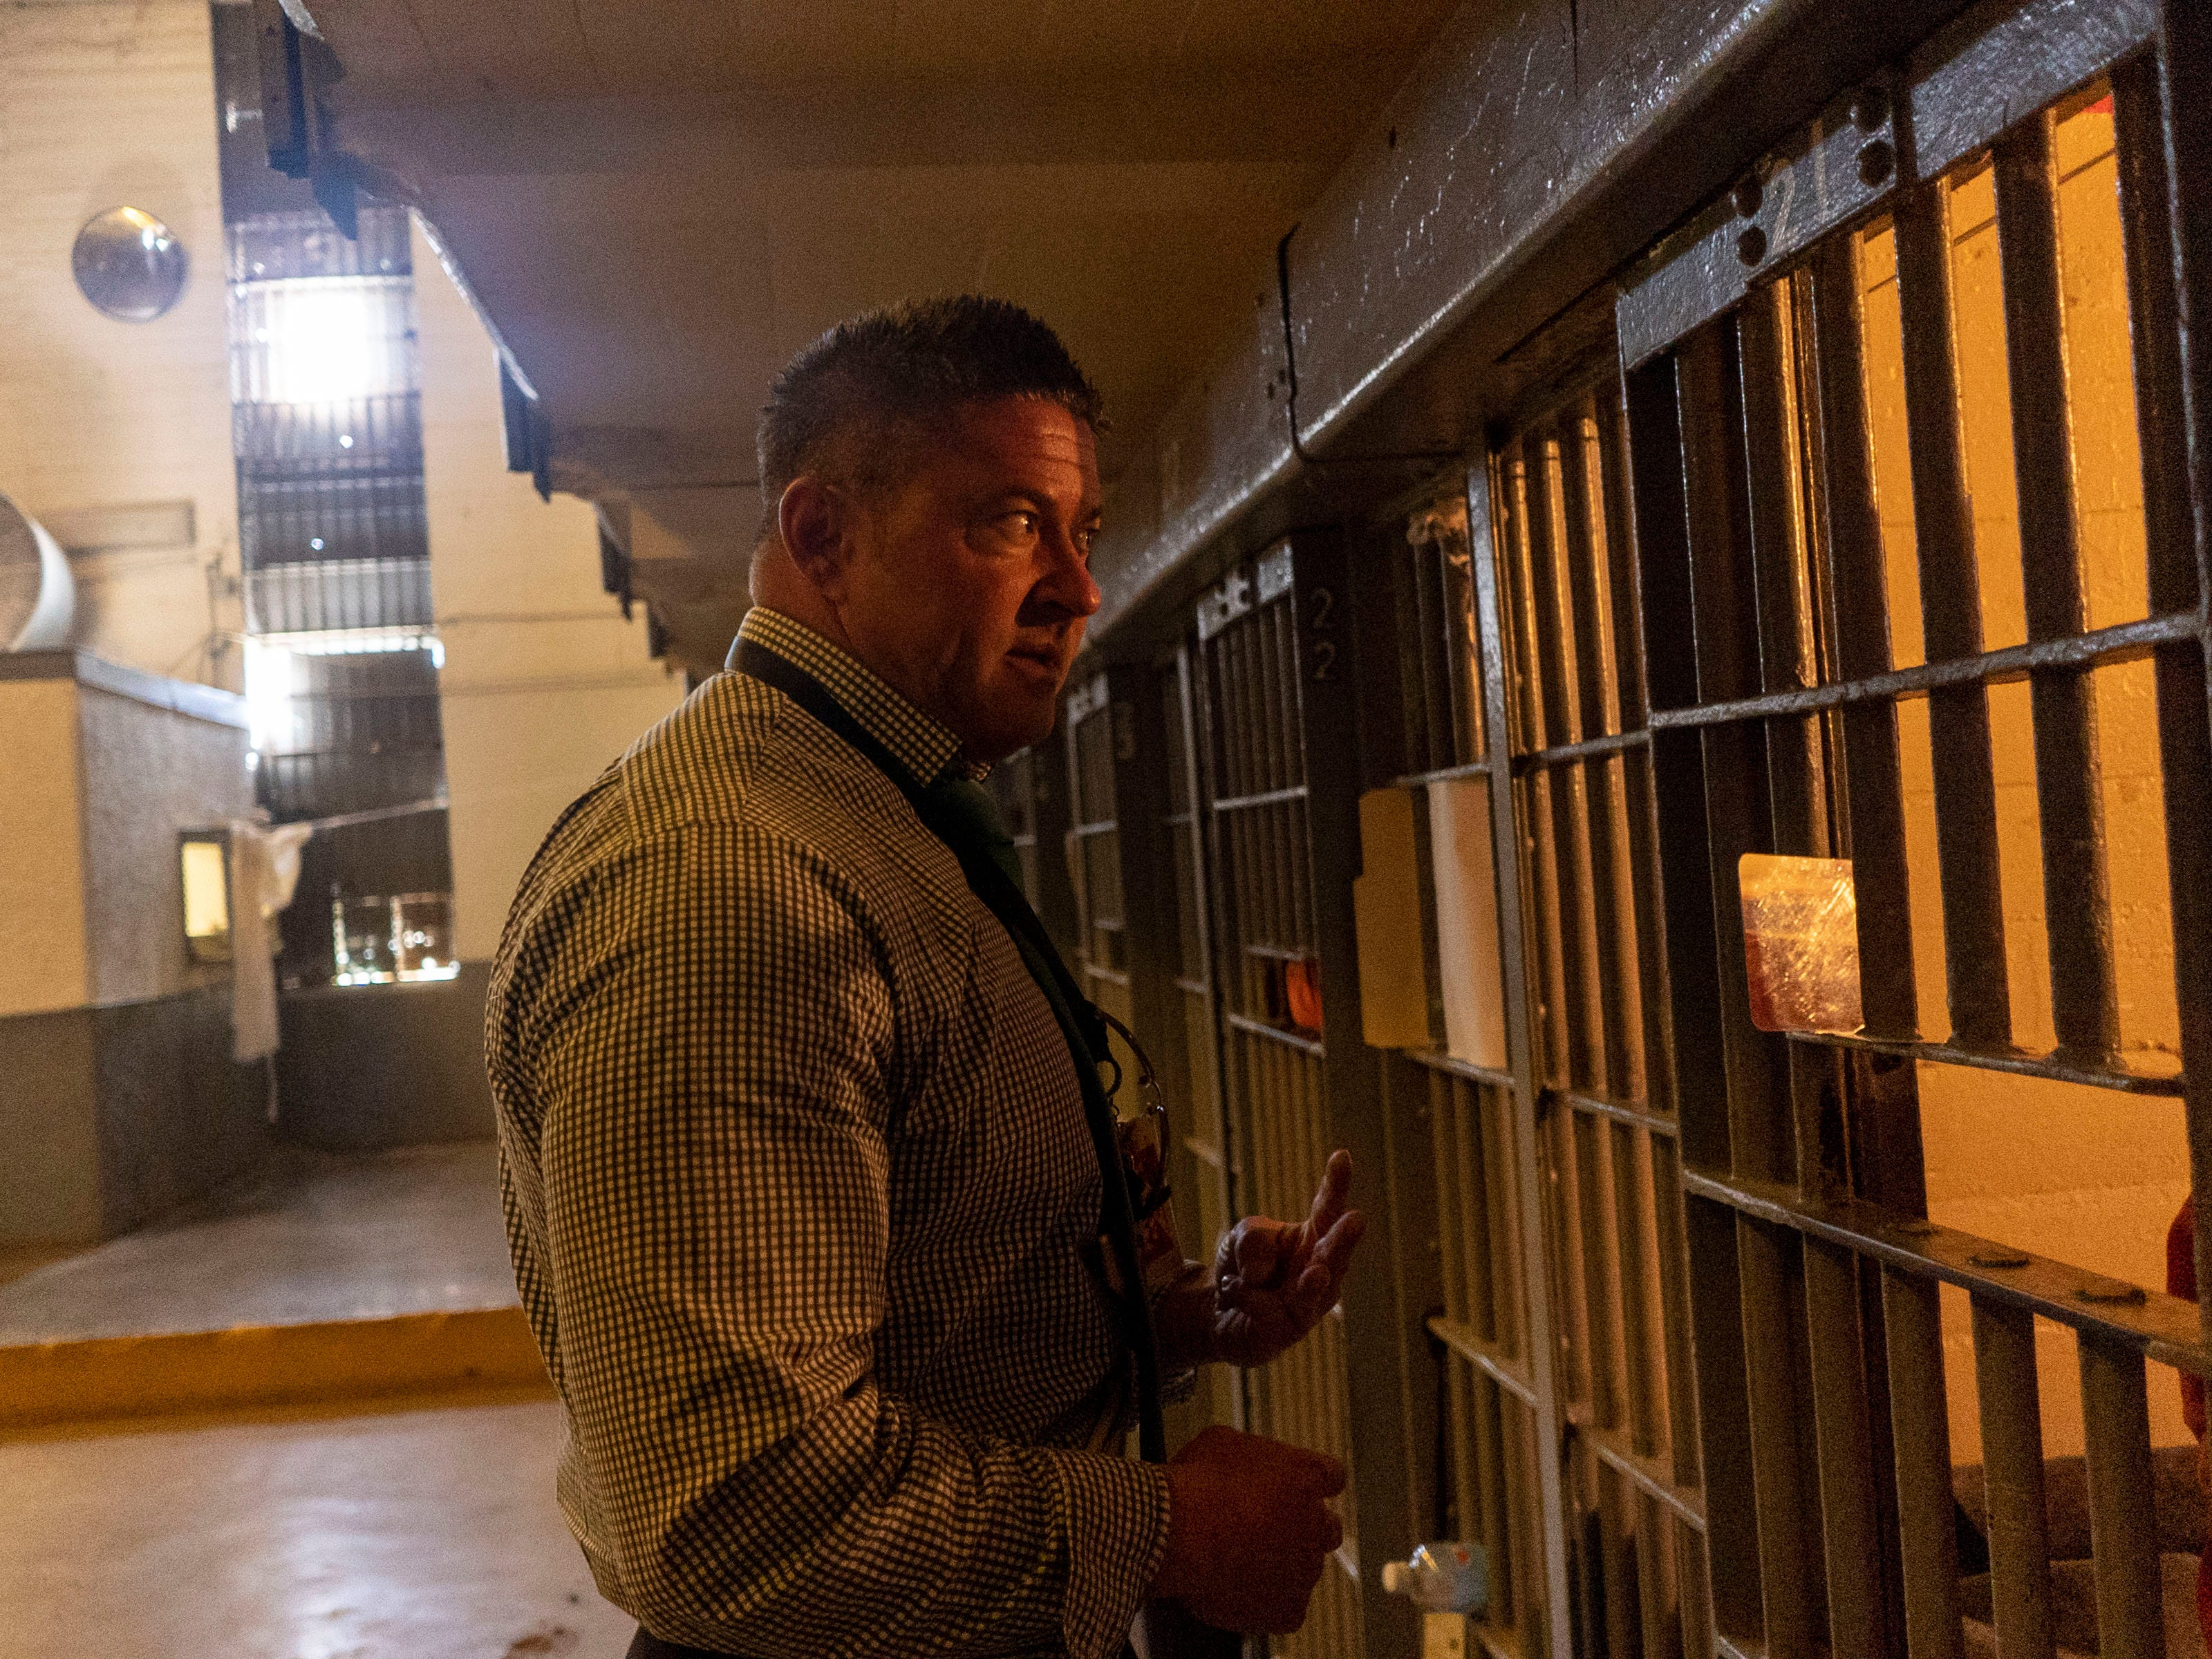 Deputy Warden Jason Monson talks to one of the inmate in his cell while he oversees the Central Unit at the Florence Arizona State Prison Complex.